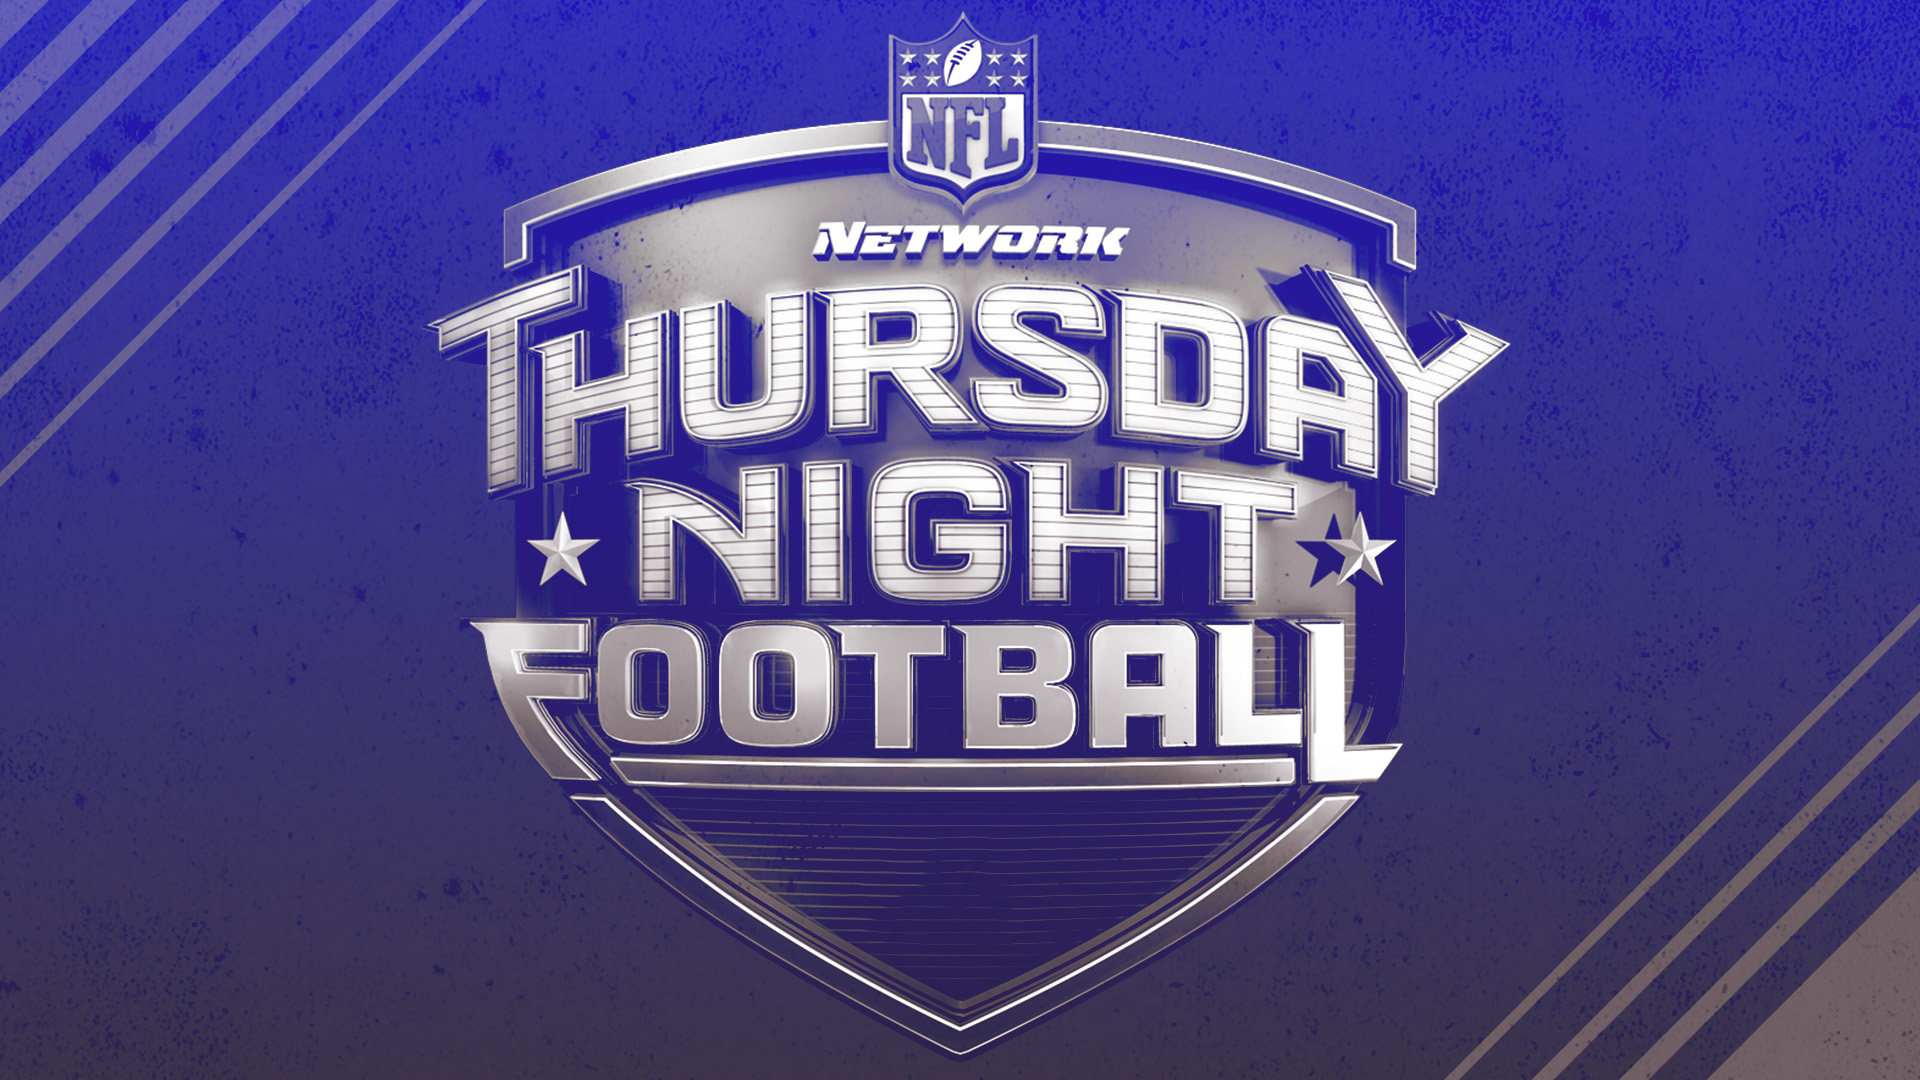 Download Thursday Night Football Logo Pics